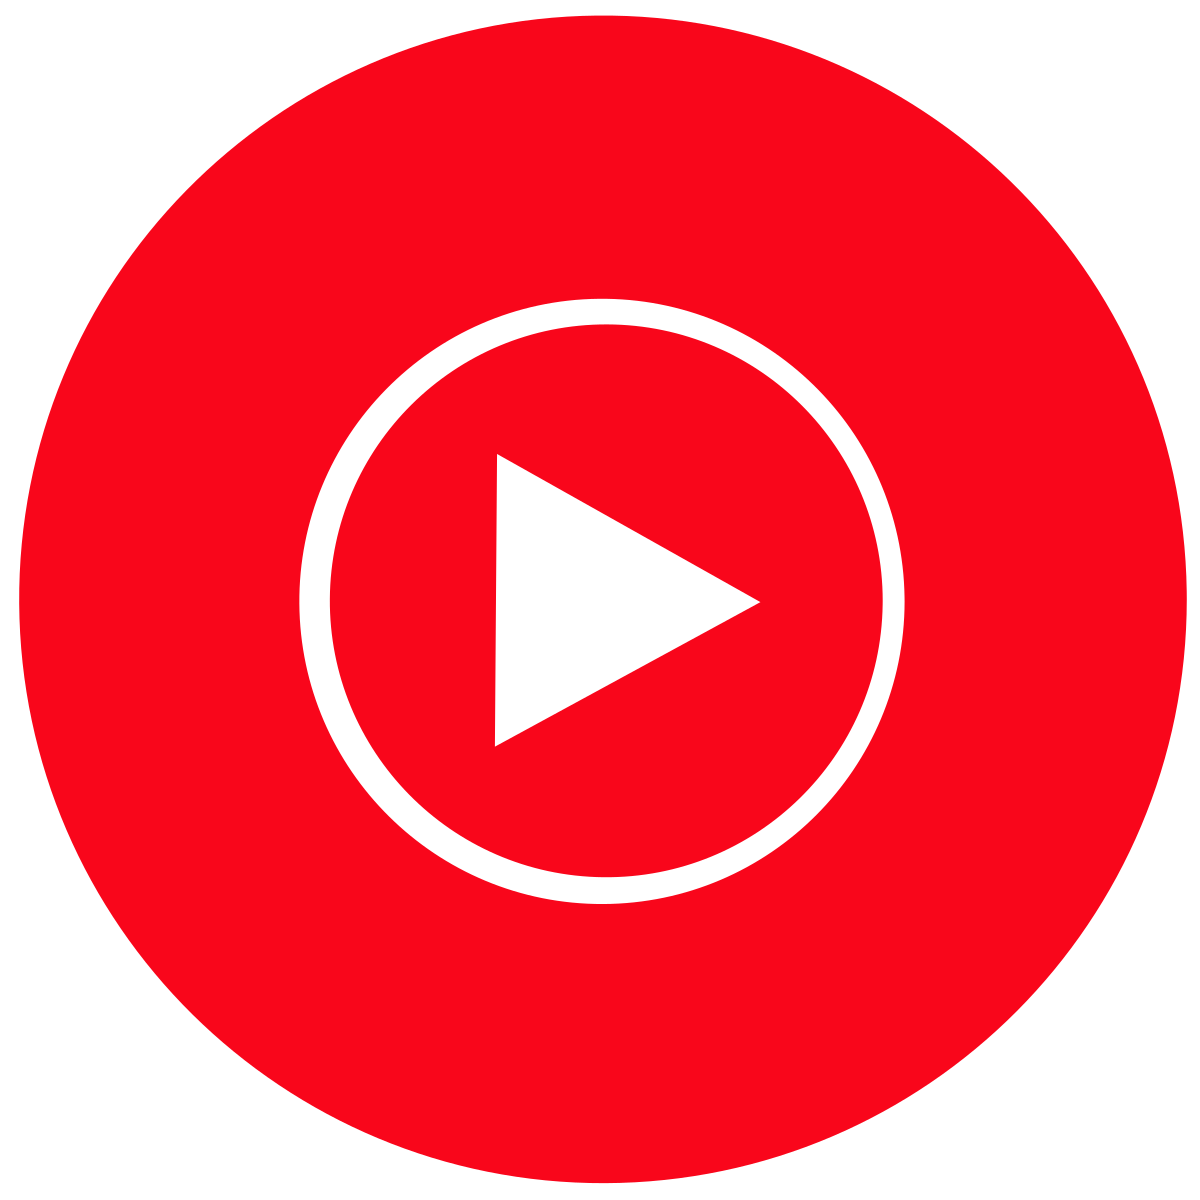 Png music video youtube. Wikipedia